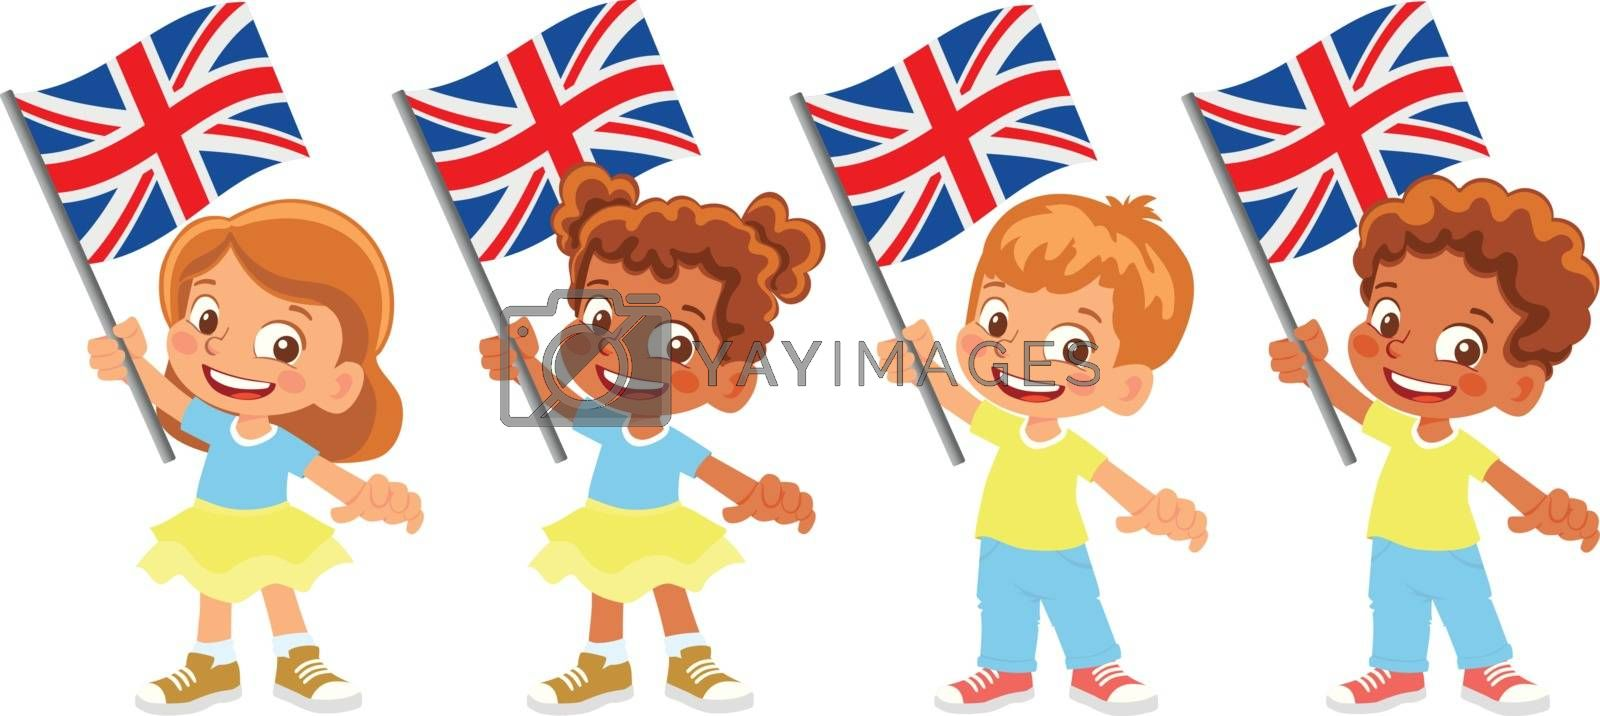 United Kingdom flag in hand set by Visual-Content